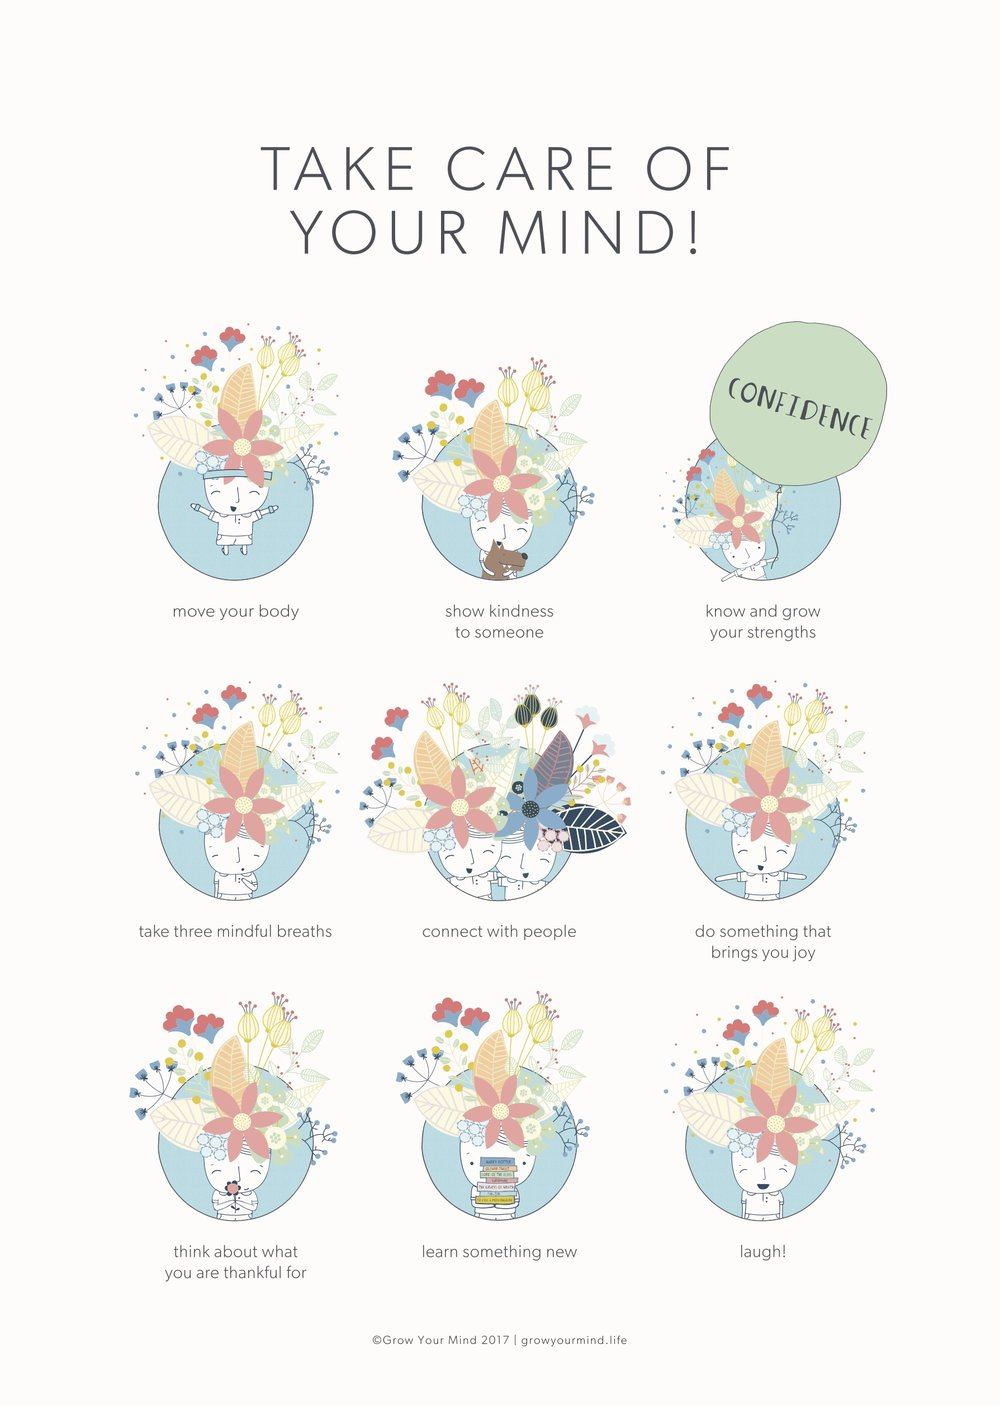 Checklist for our Mind - poster by Grow Your Mind